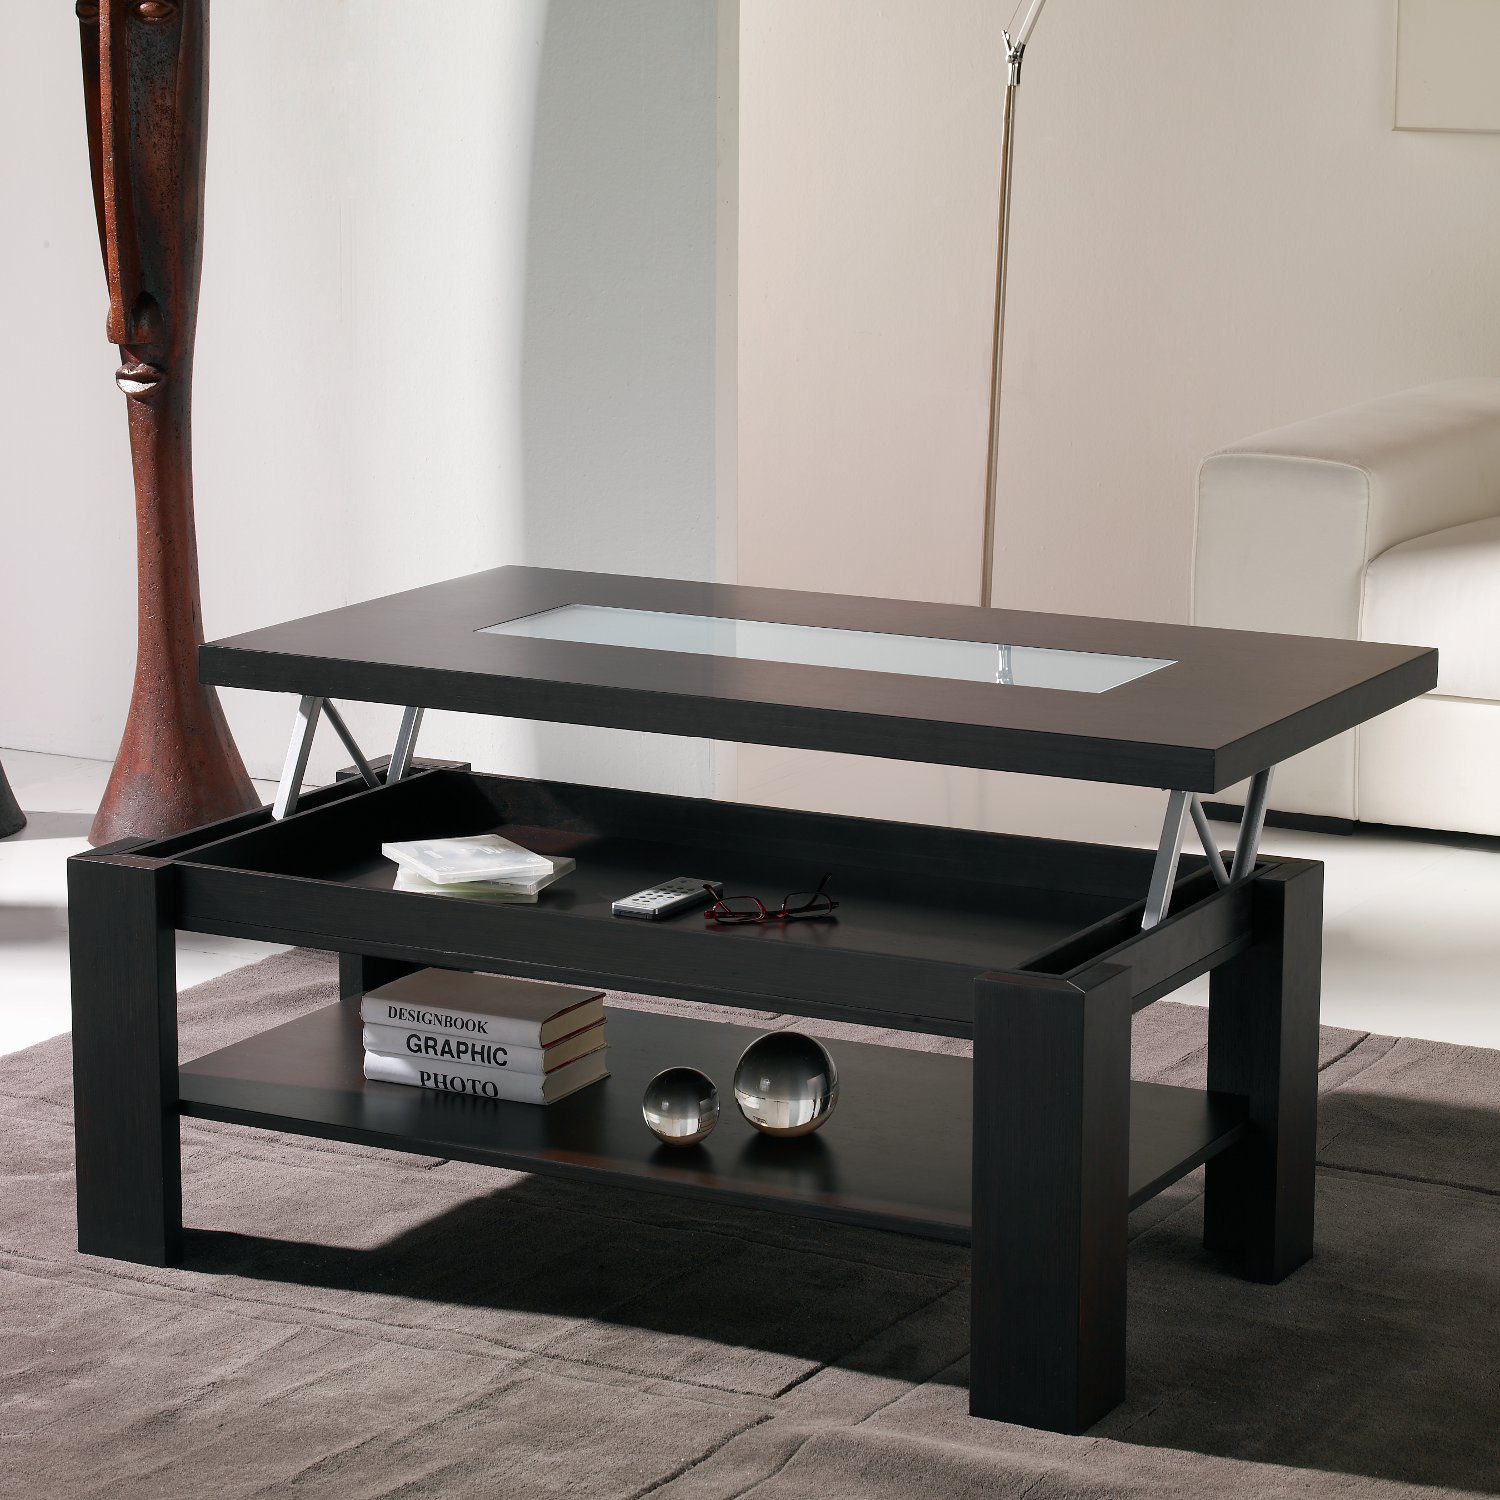 Table relevable pas cher - Table basse transformable pas cher ...